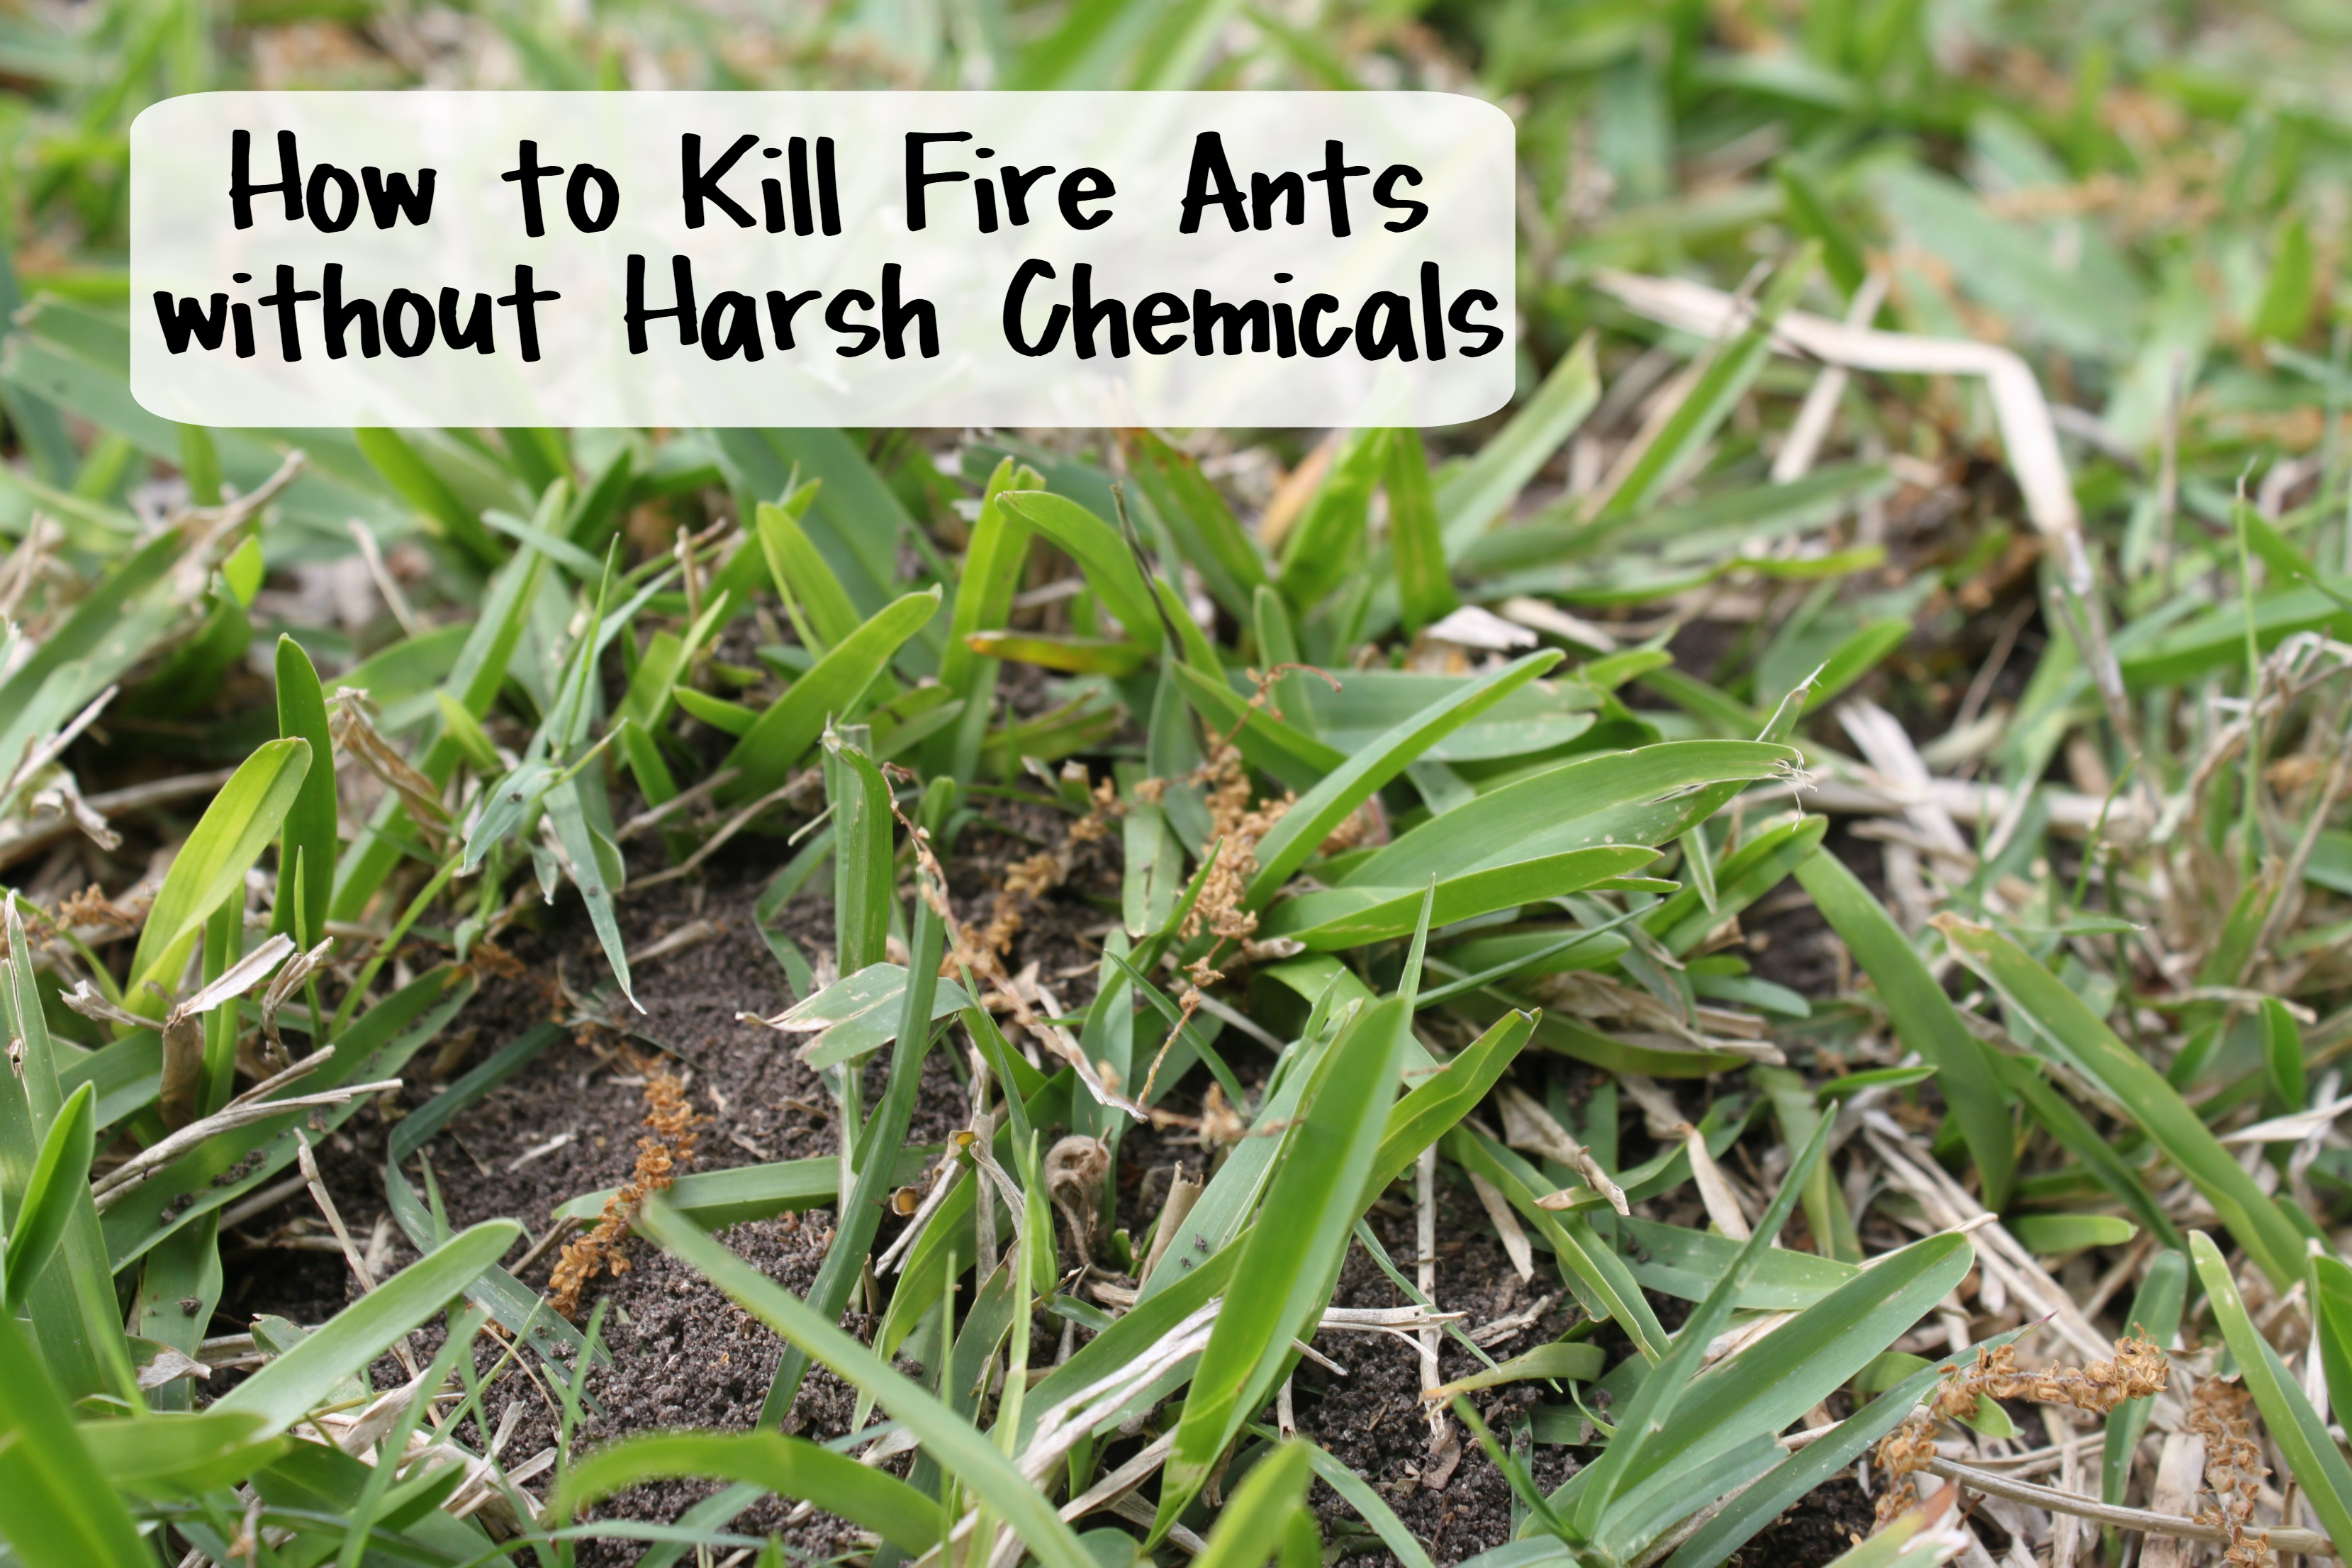 How to naturally get rid of ants how to naturally get rid of ants - How To Kill Fire Ants Without Harsh Chemicals Natural Solutions